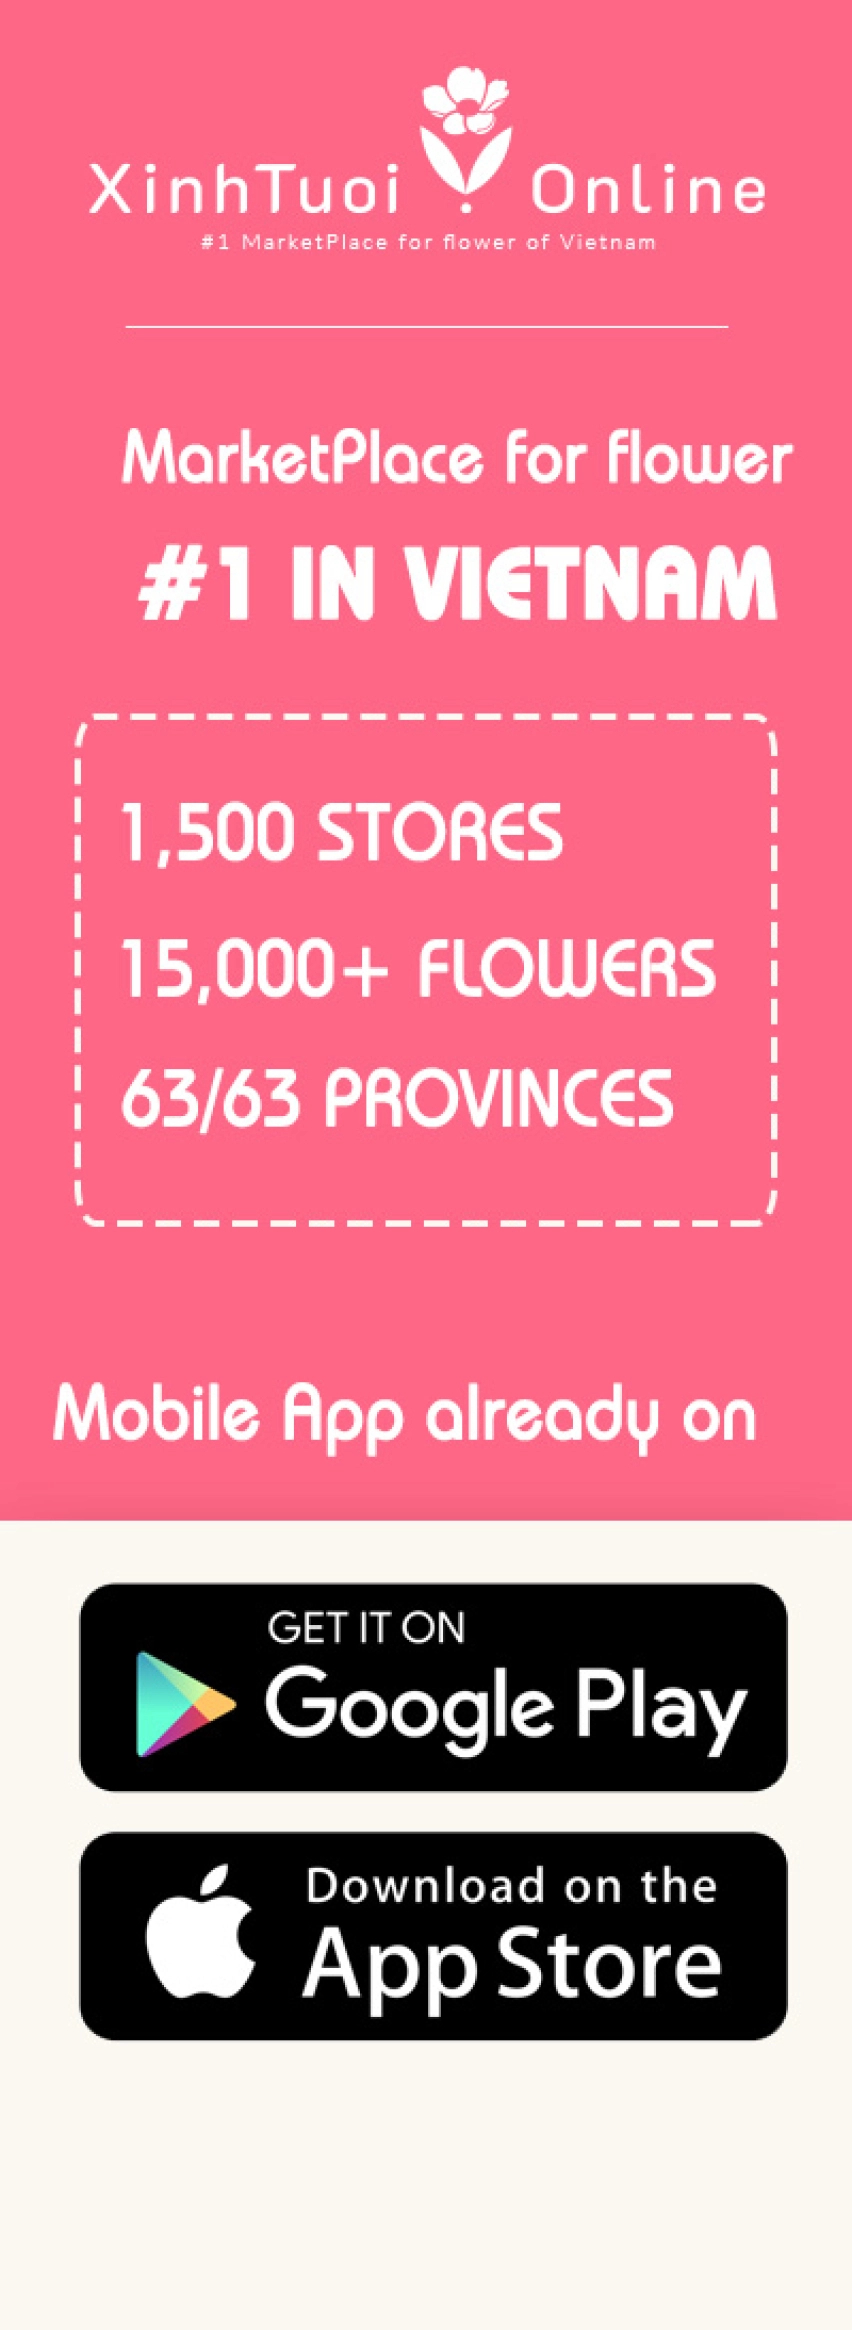 Xinh Tuoi Online - #1 MarketPlace for flower of Vietnam